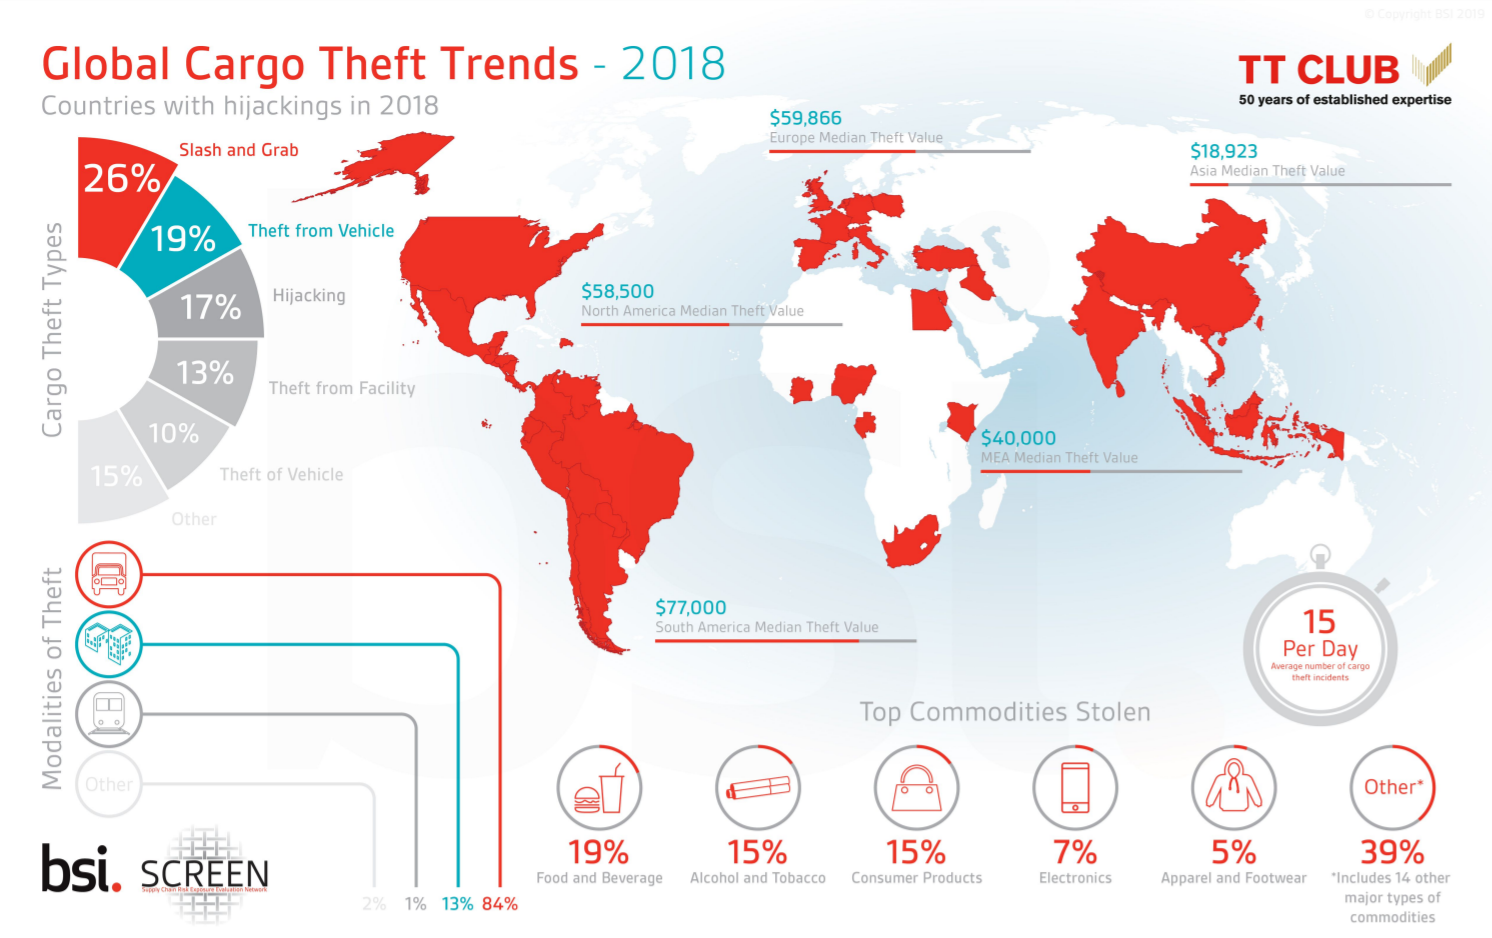 Global cargo theft trends 2018.